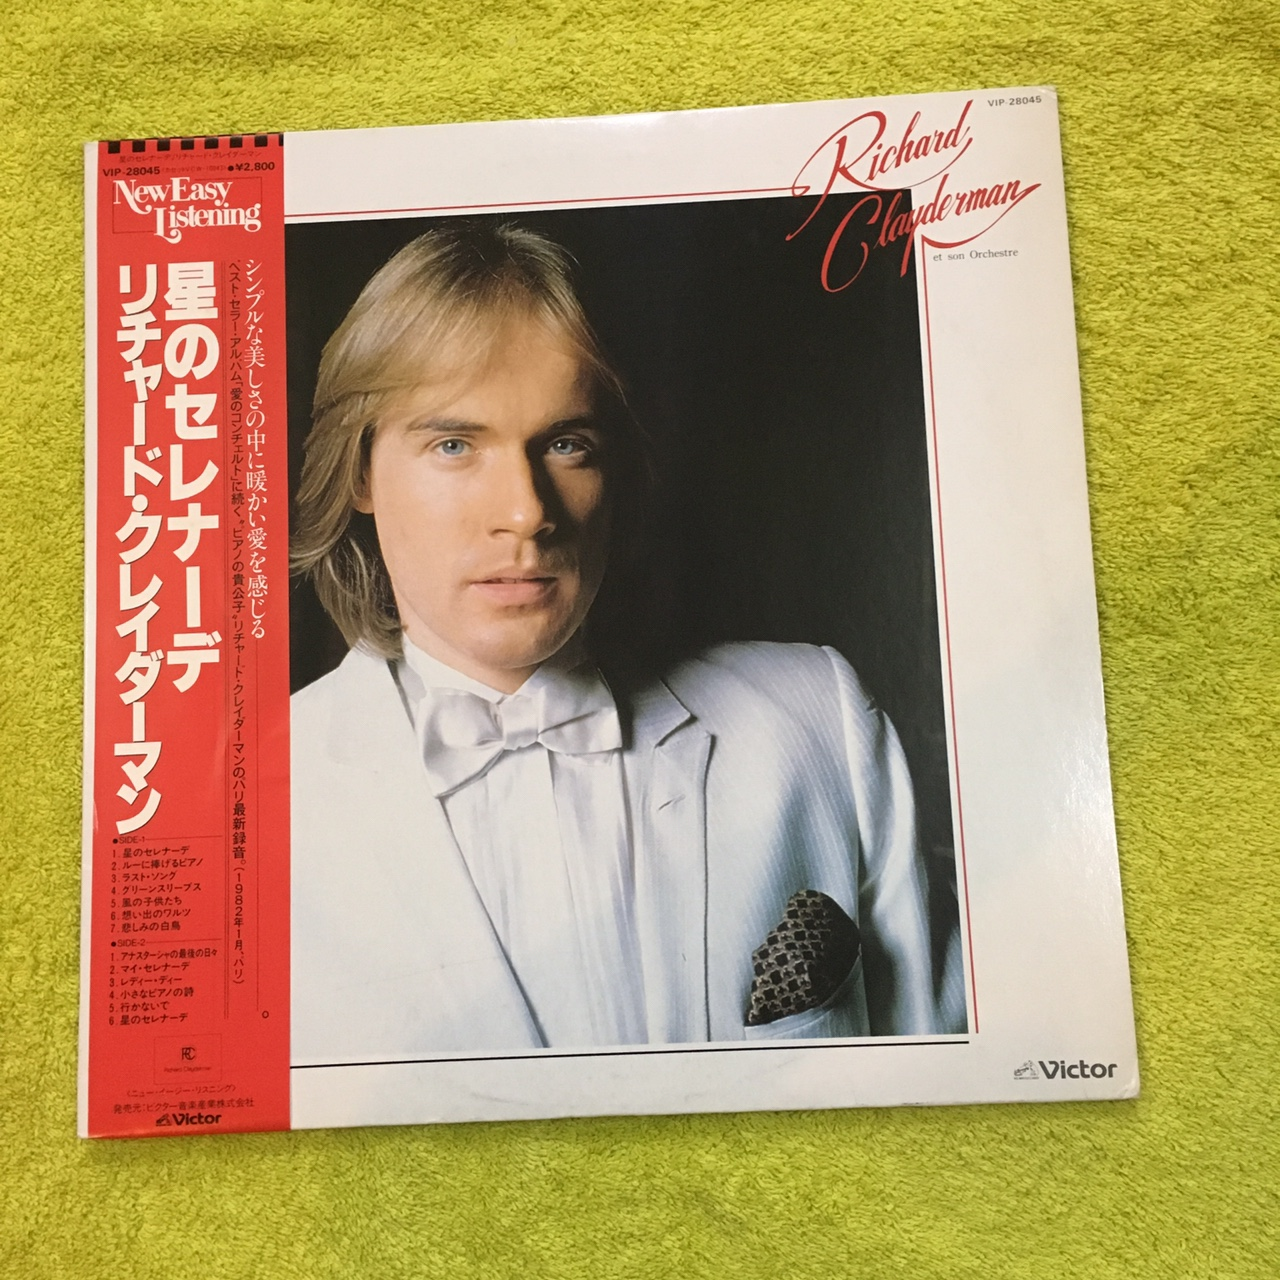 coup-de-coeur-richard-clayderman-vip-28045-lp-1982